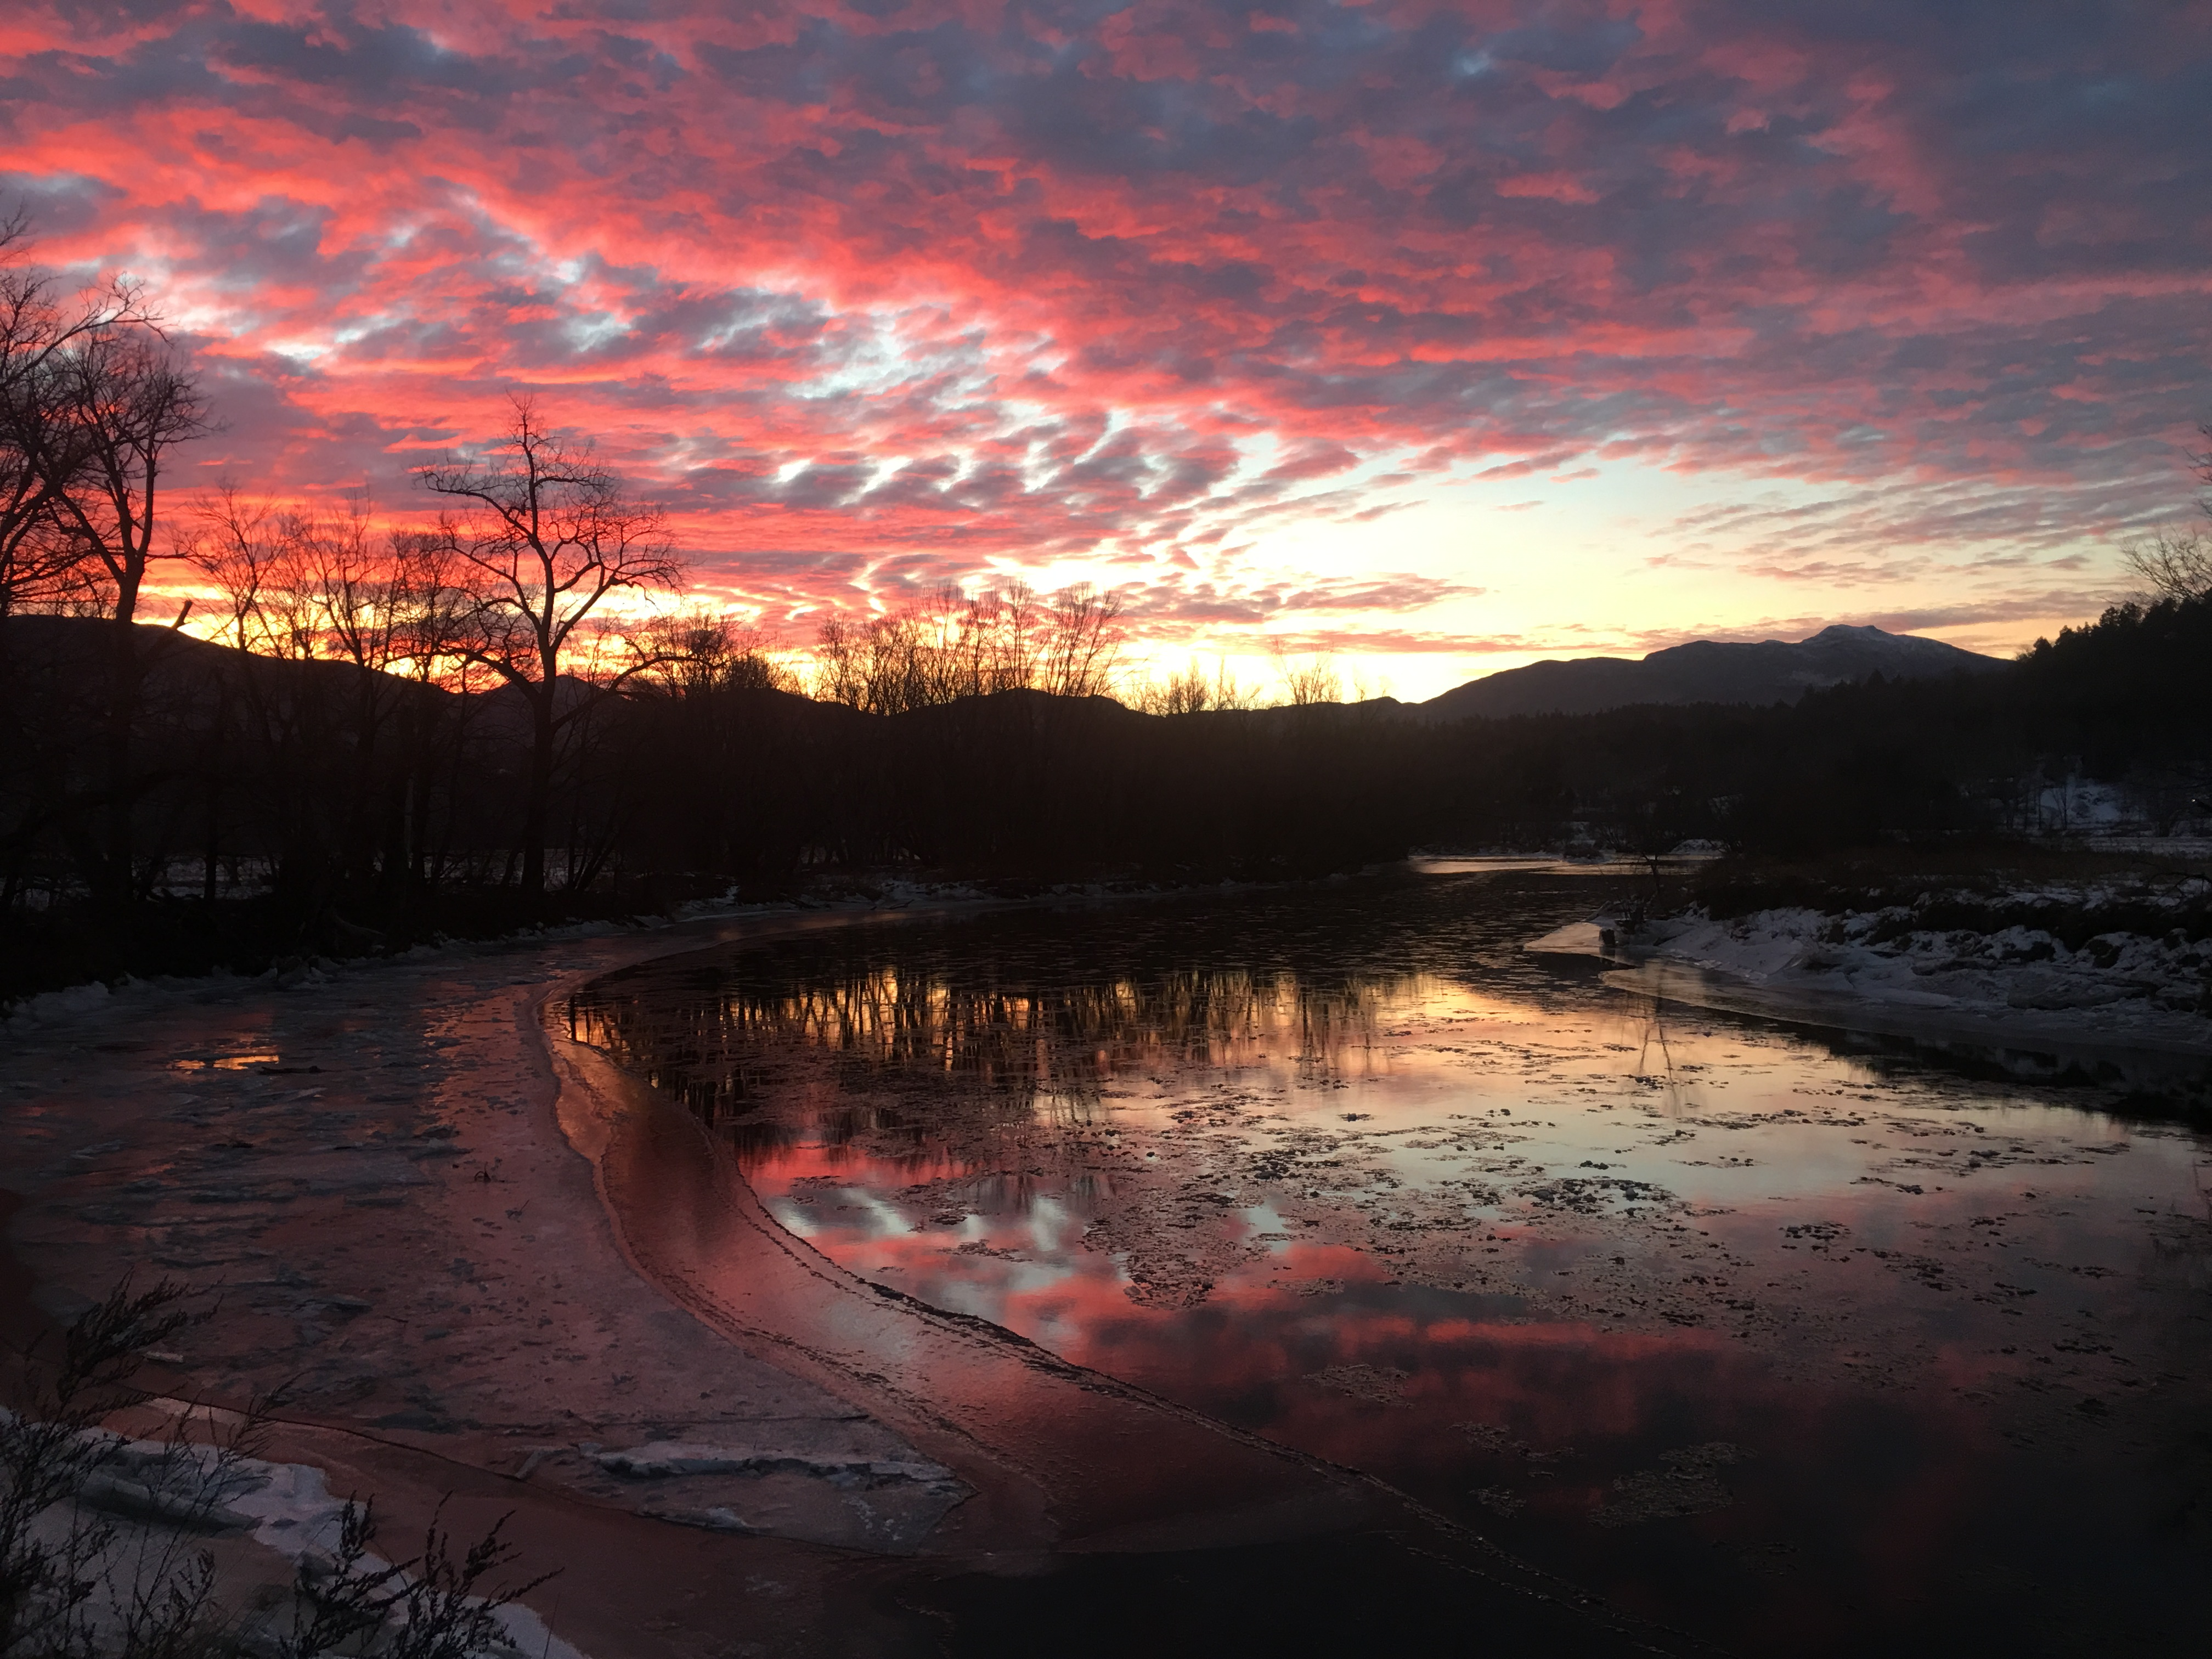 Sunrise by the Lamoille River December 26, 2016